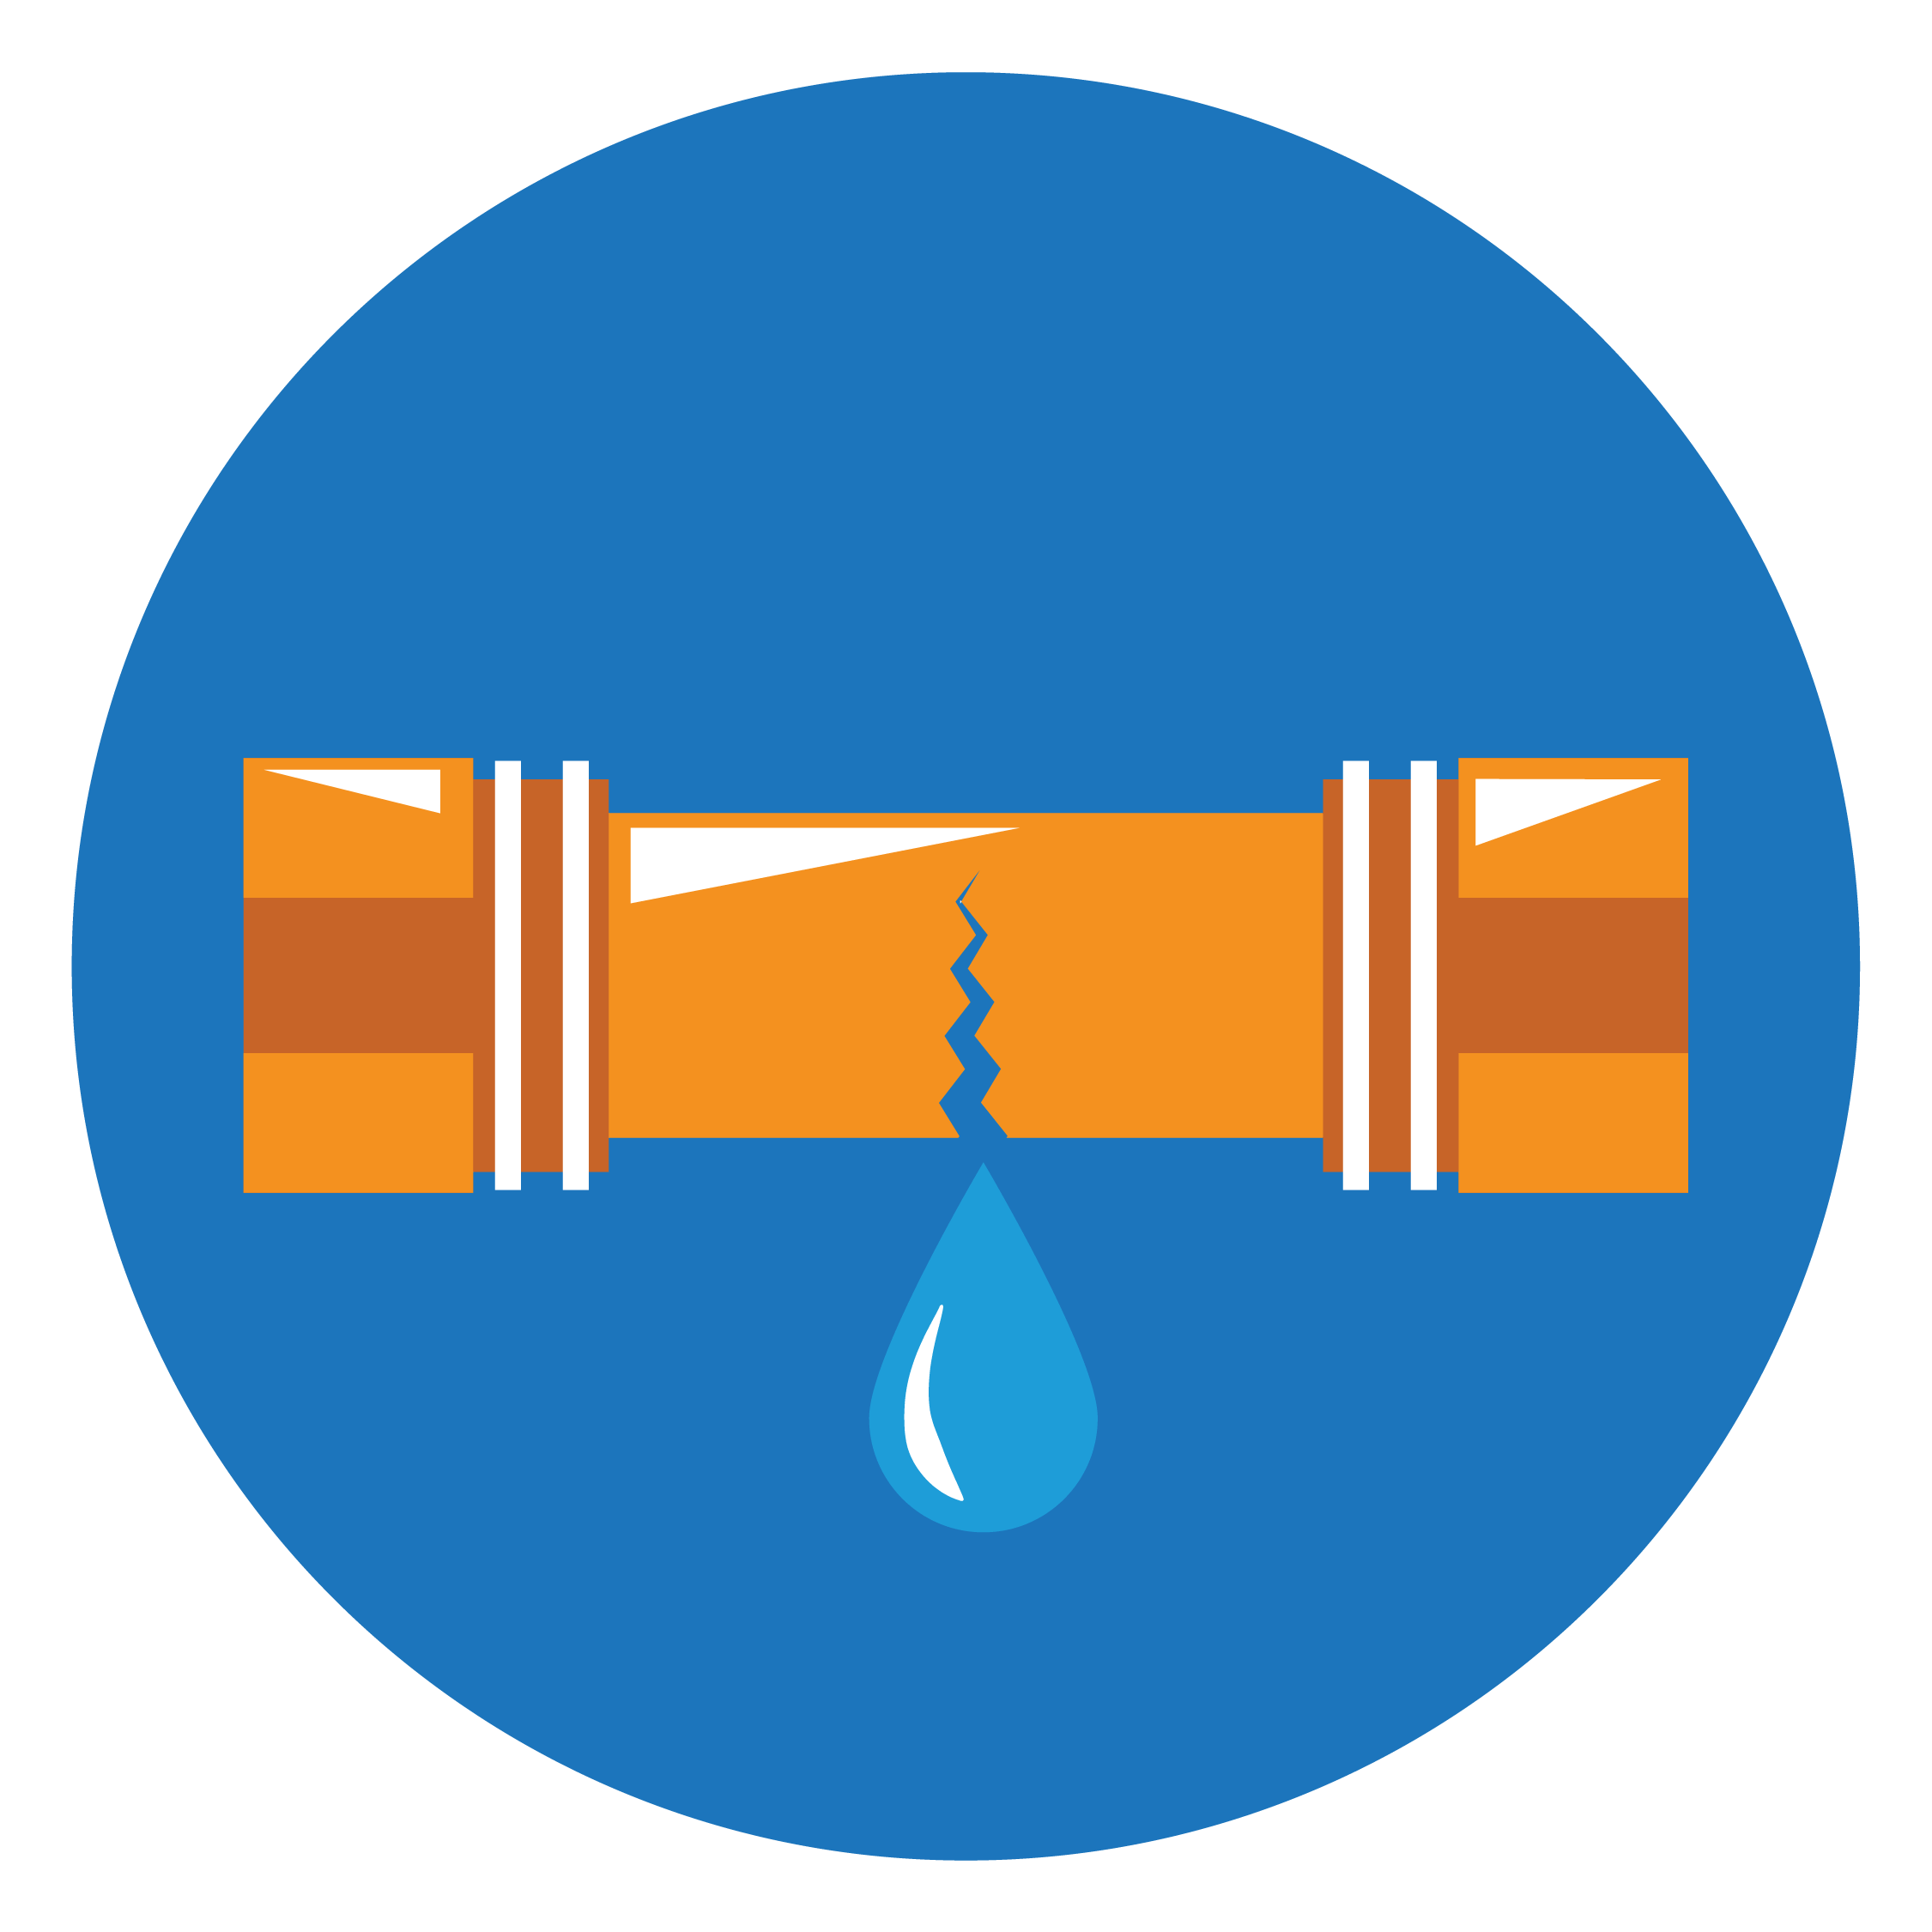 leaking pipe icon